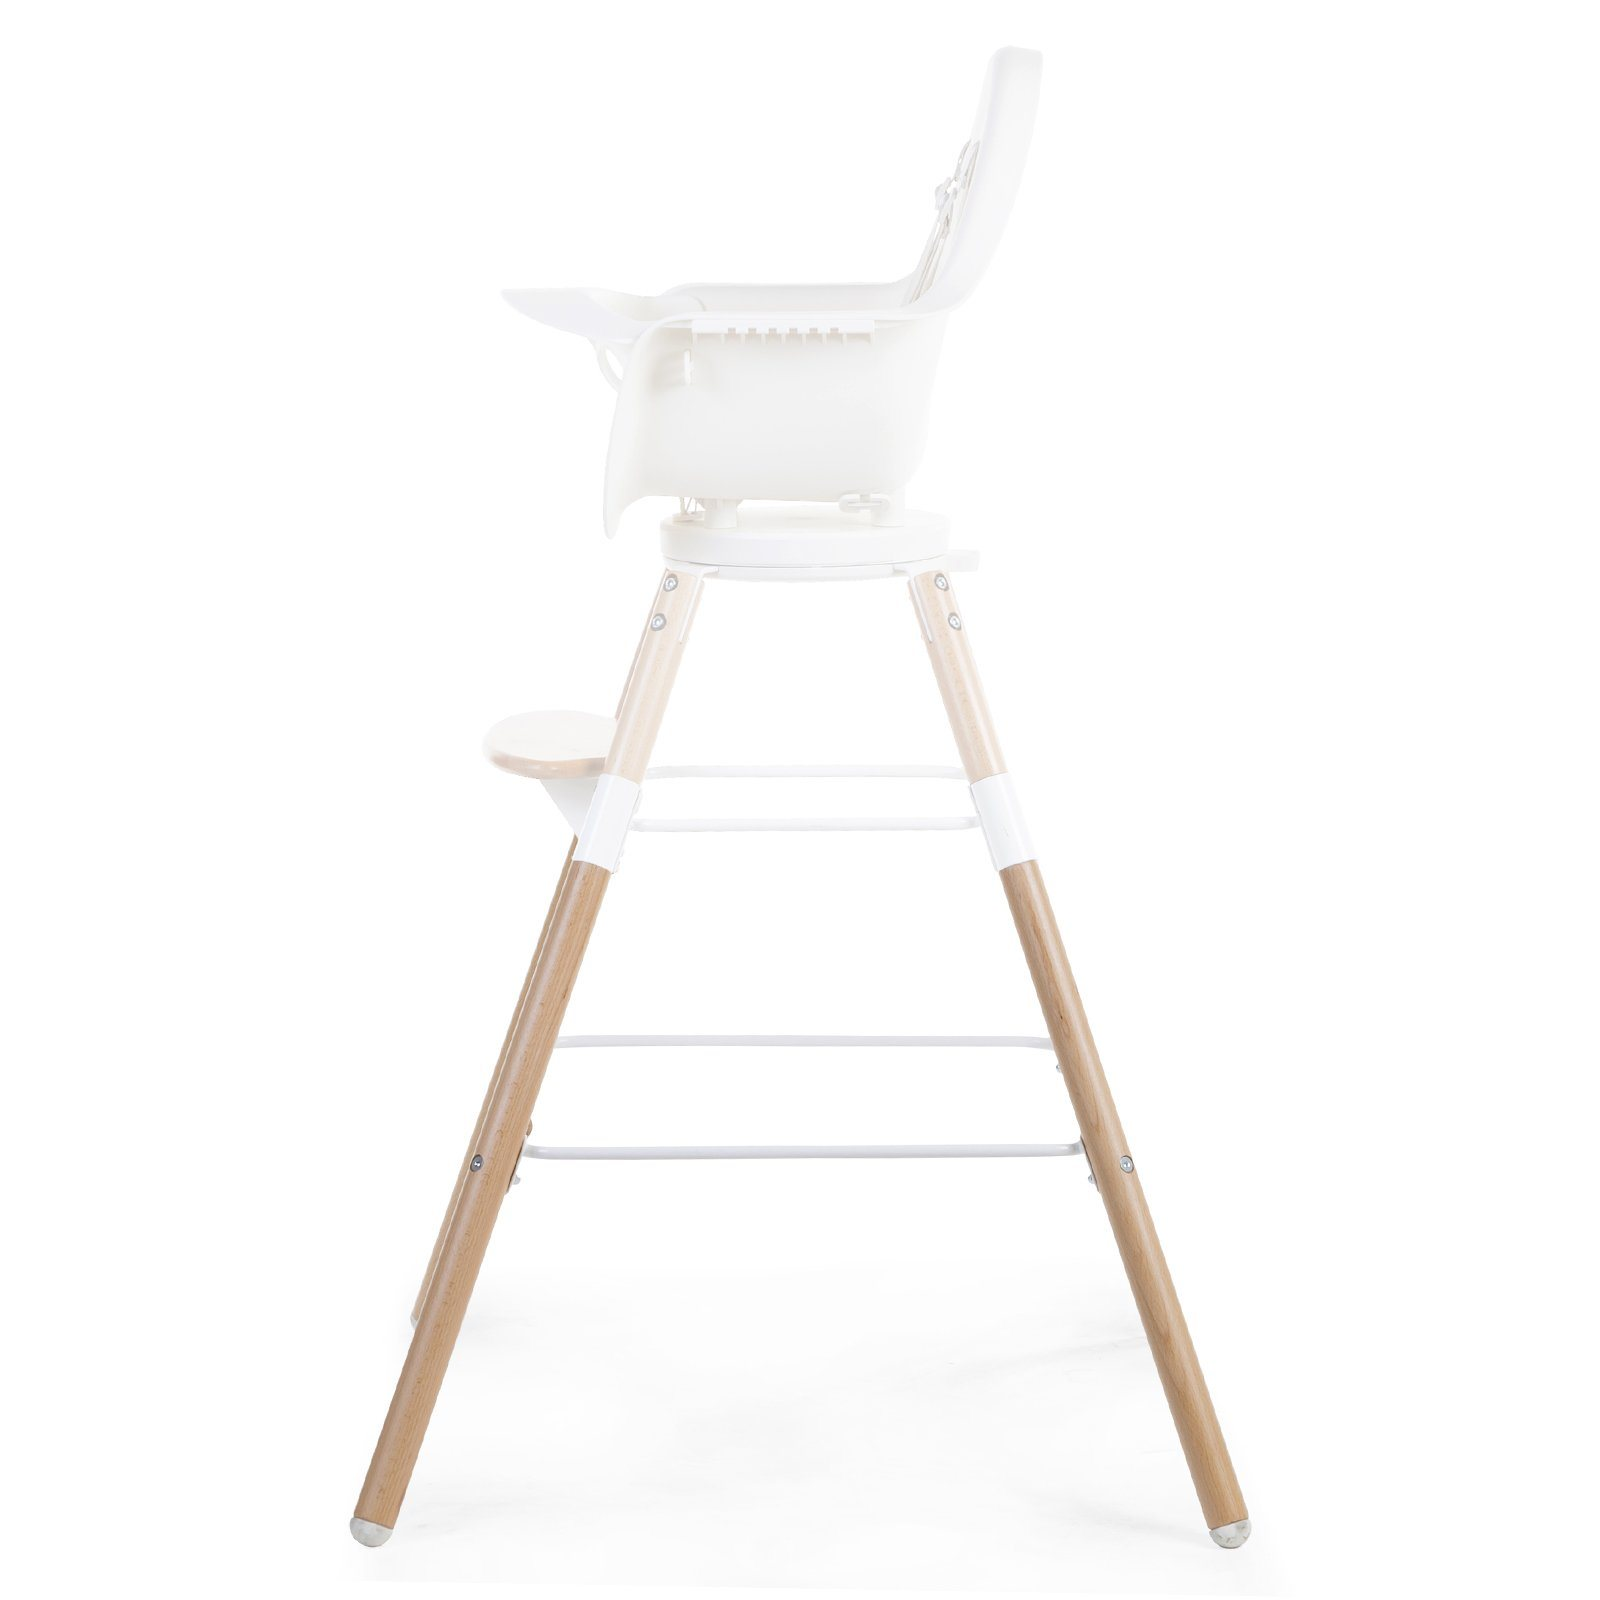 Evolu 2 Extra Long Legs Natural + Footstep Child Home